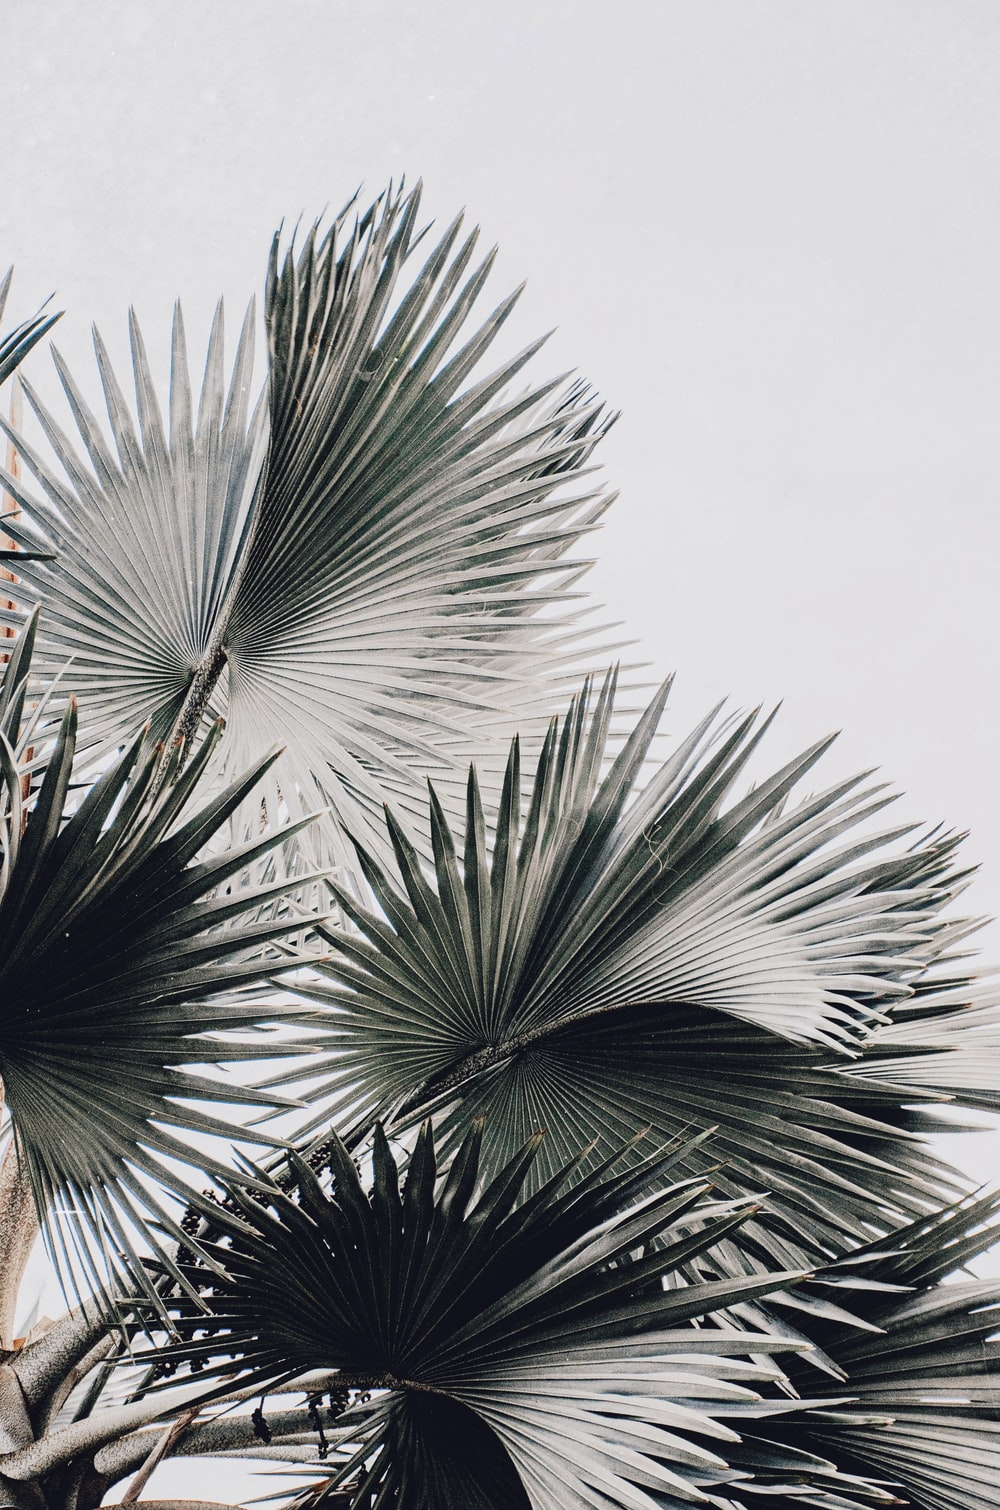 20+ White Aesthetic Pictures   Download Free Images on Unsplash